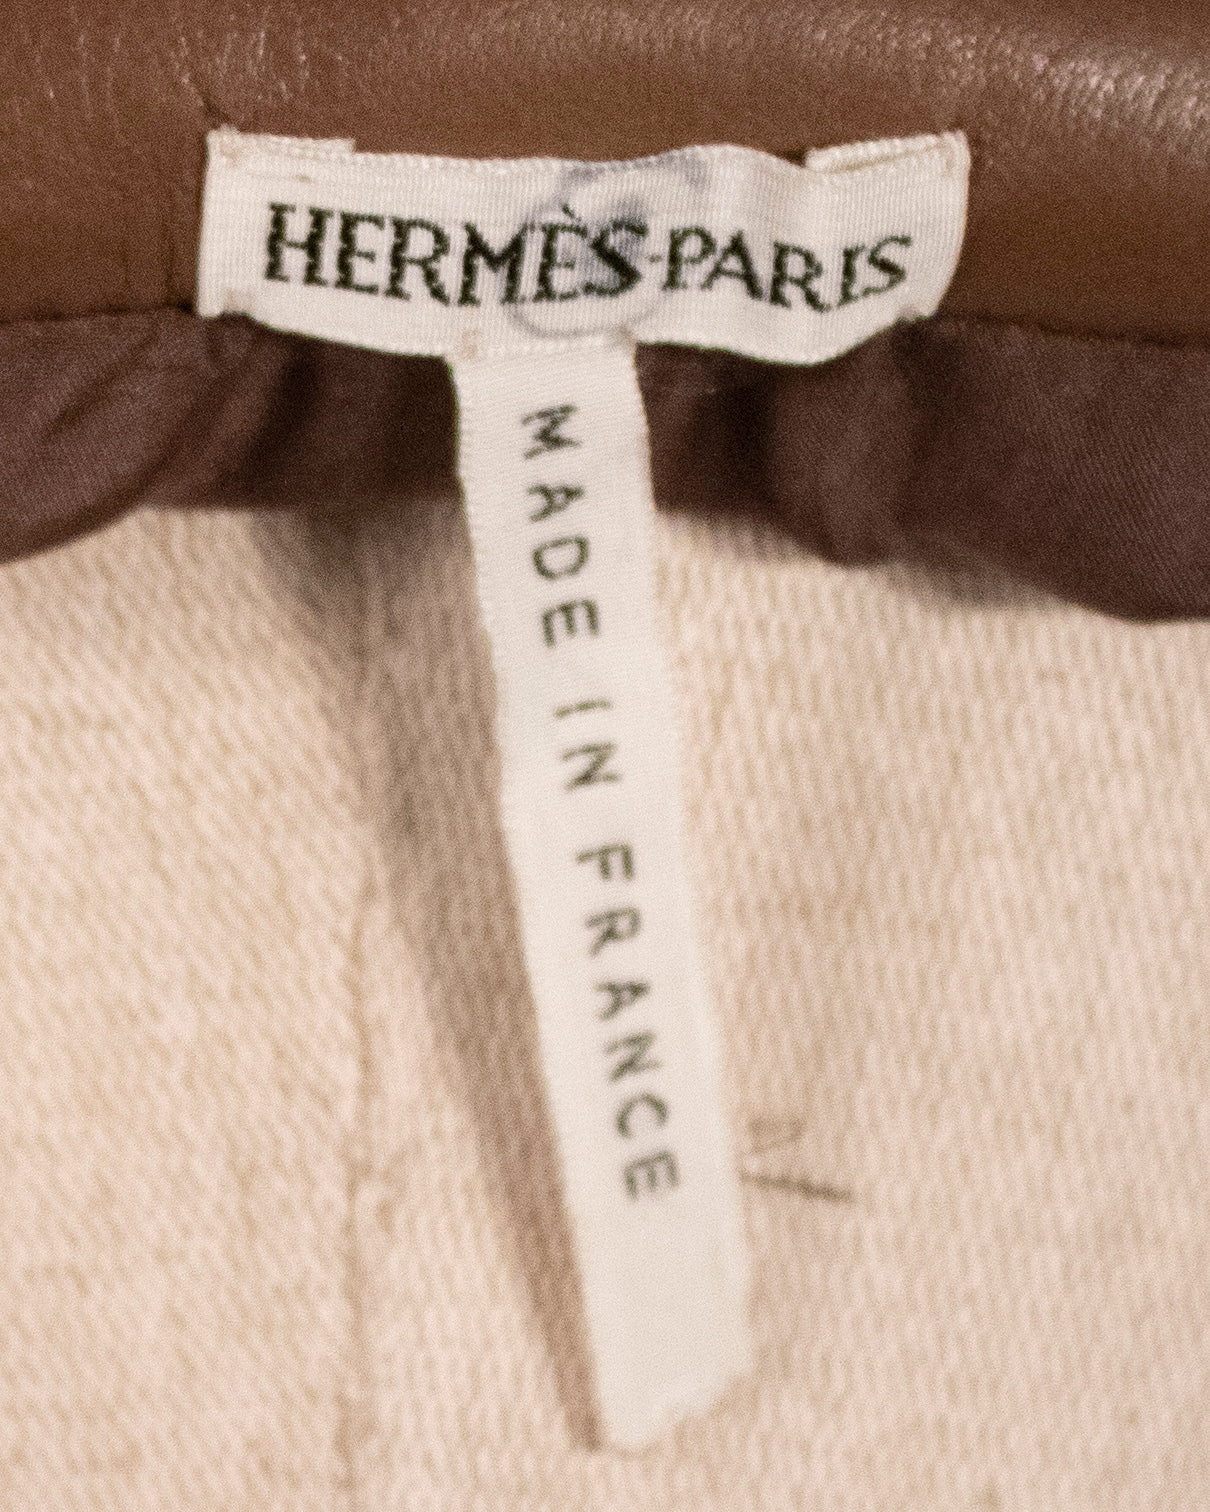 Margiela for Hermès brown suede trousers